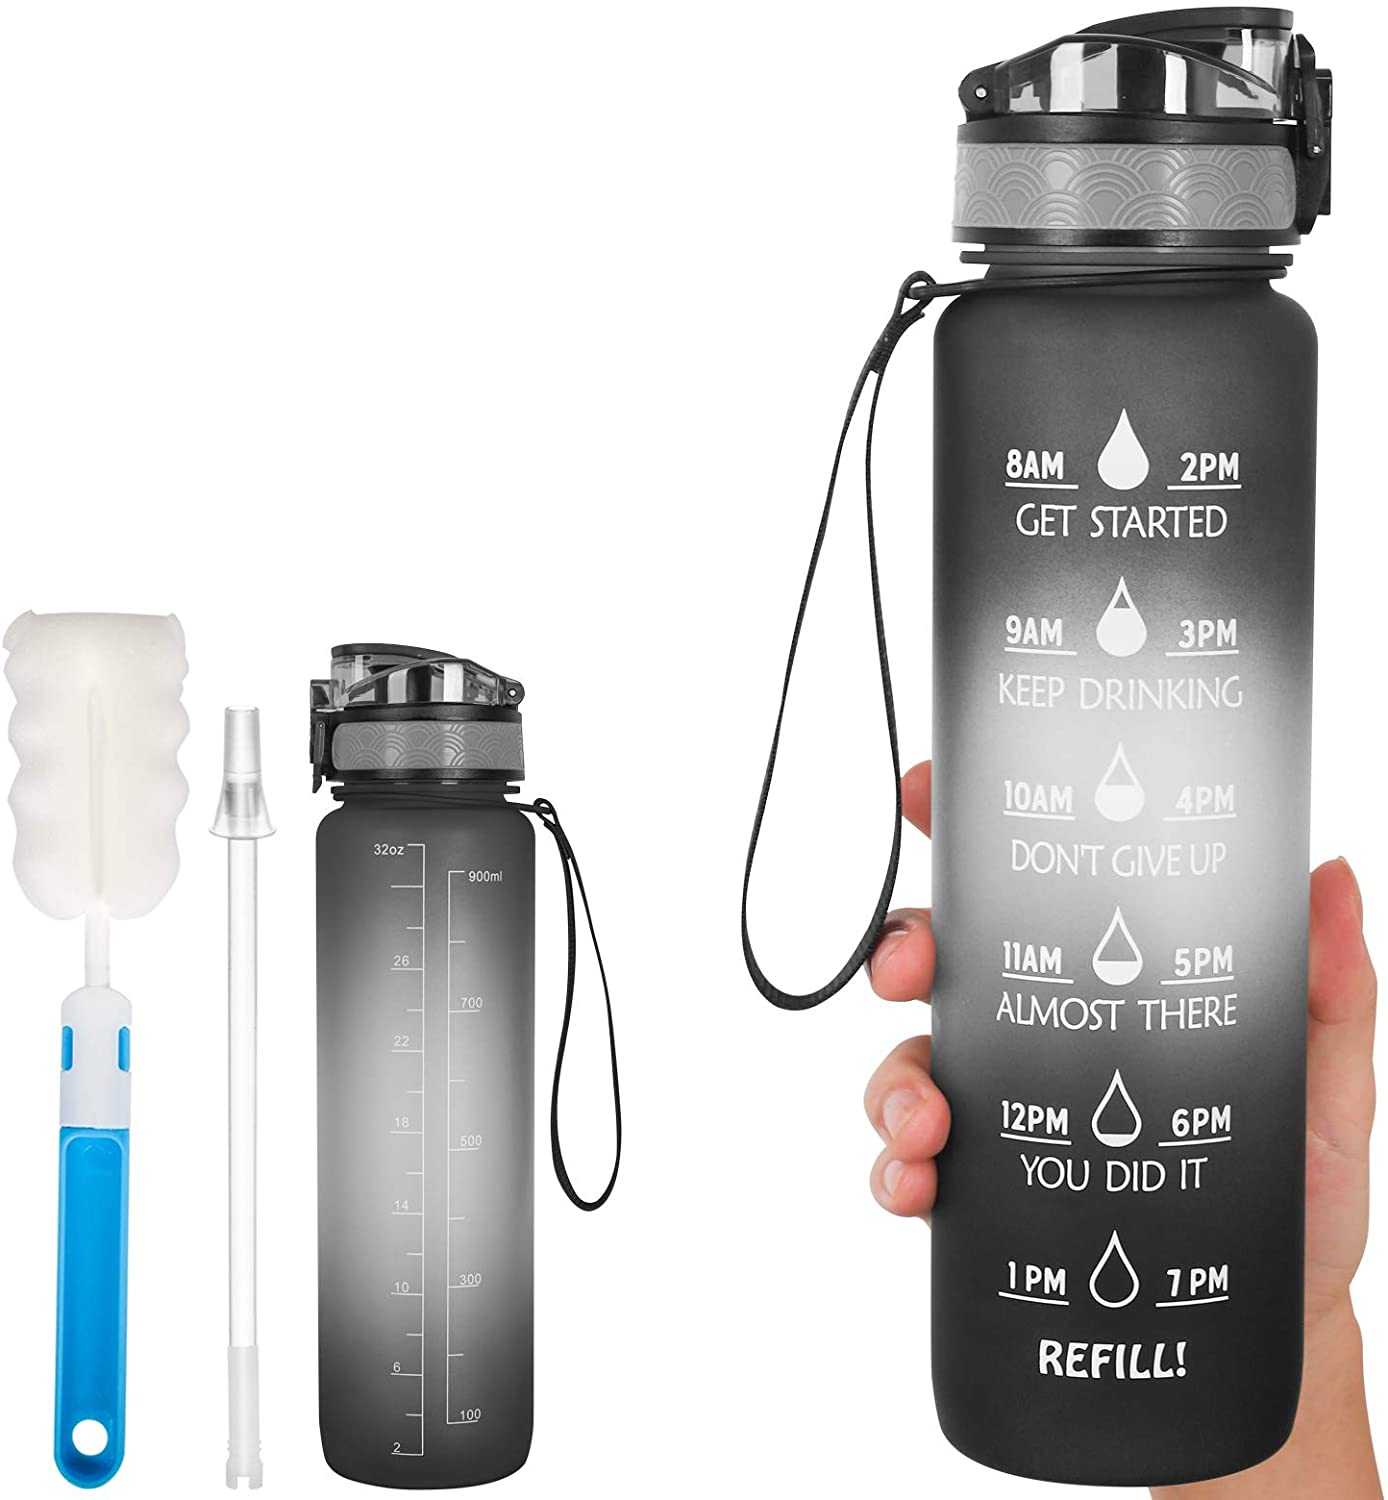 N - A Motivational Water Bottles with Time Marker to Drink BPA Free Non-Toxic Wide Mouth Leakproof 32oz Sports Water Jug with Removable Straw Strainer for Gym Workout Outdoors